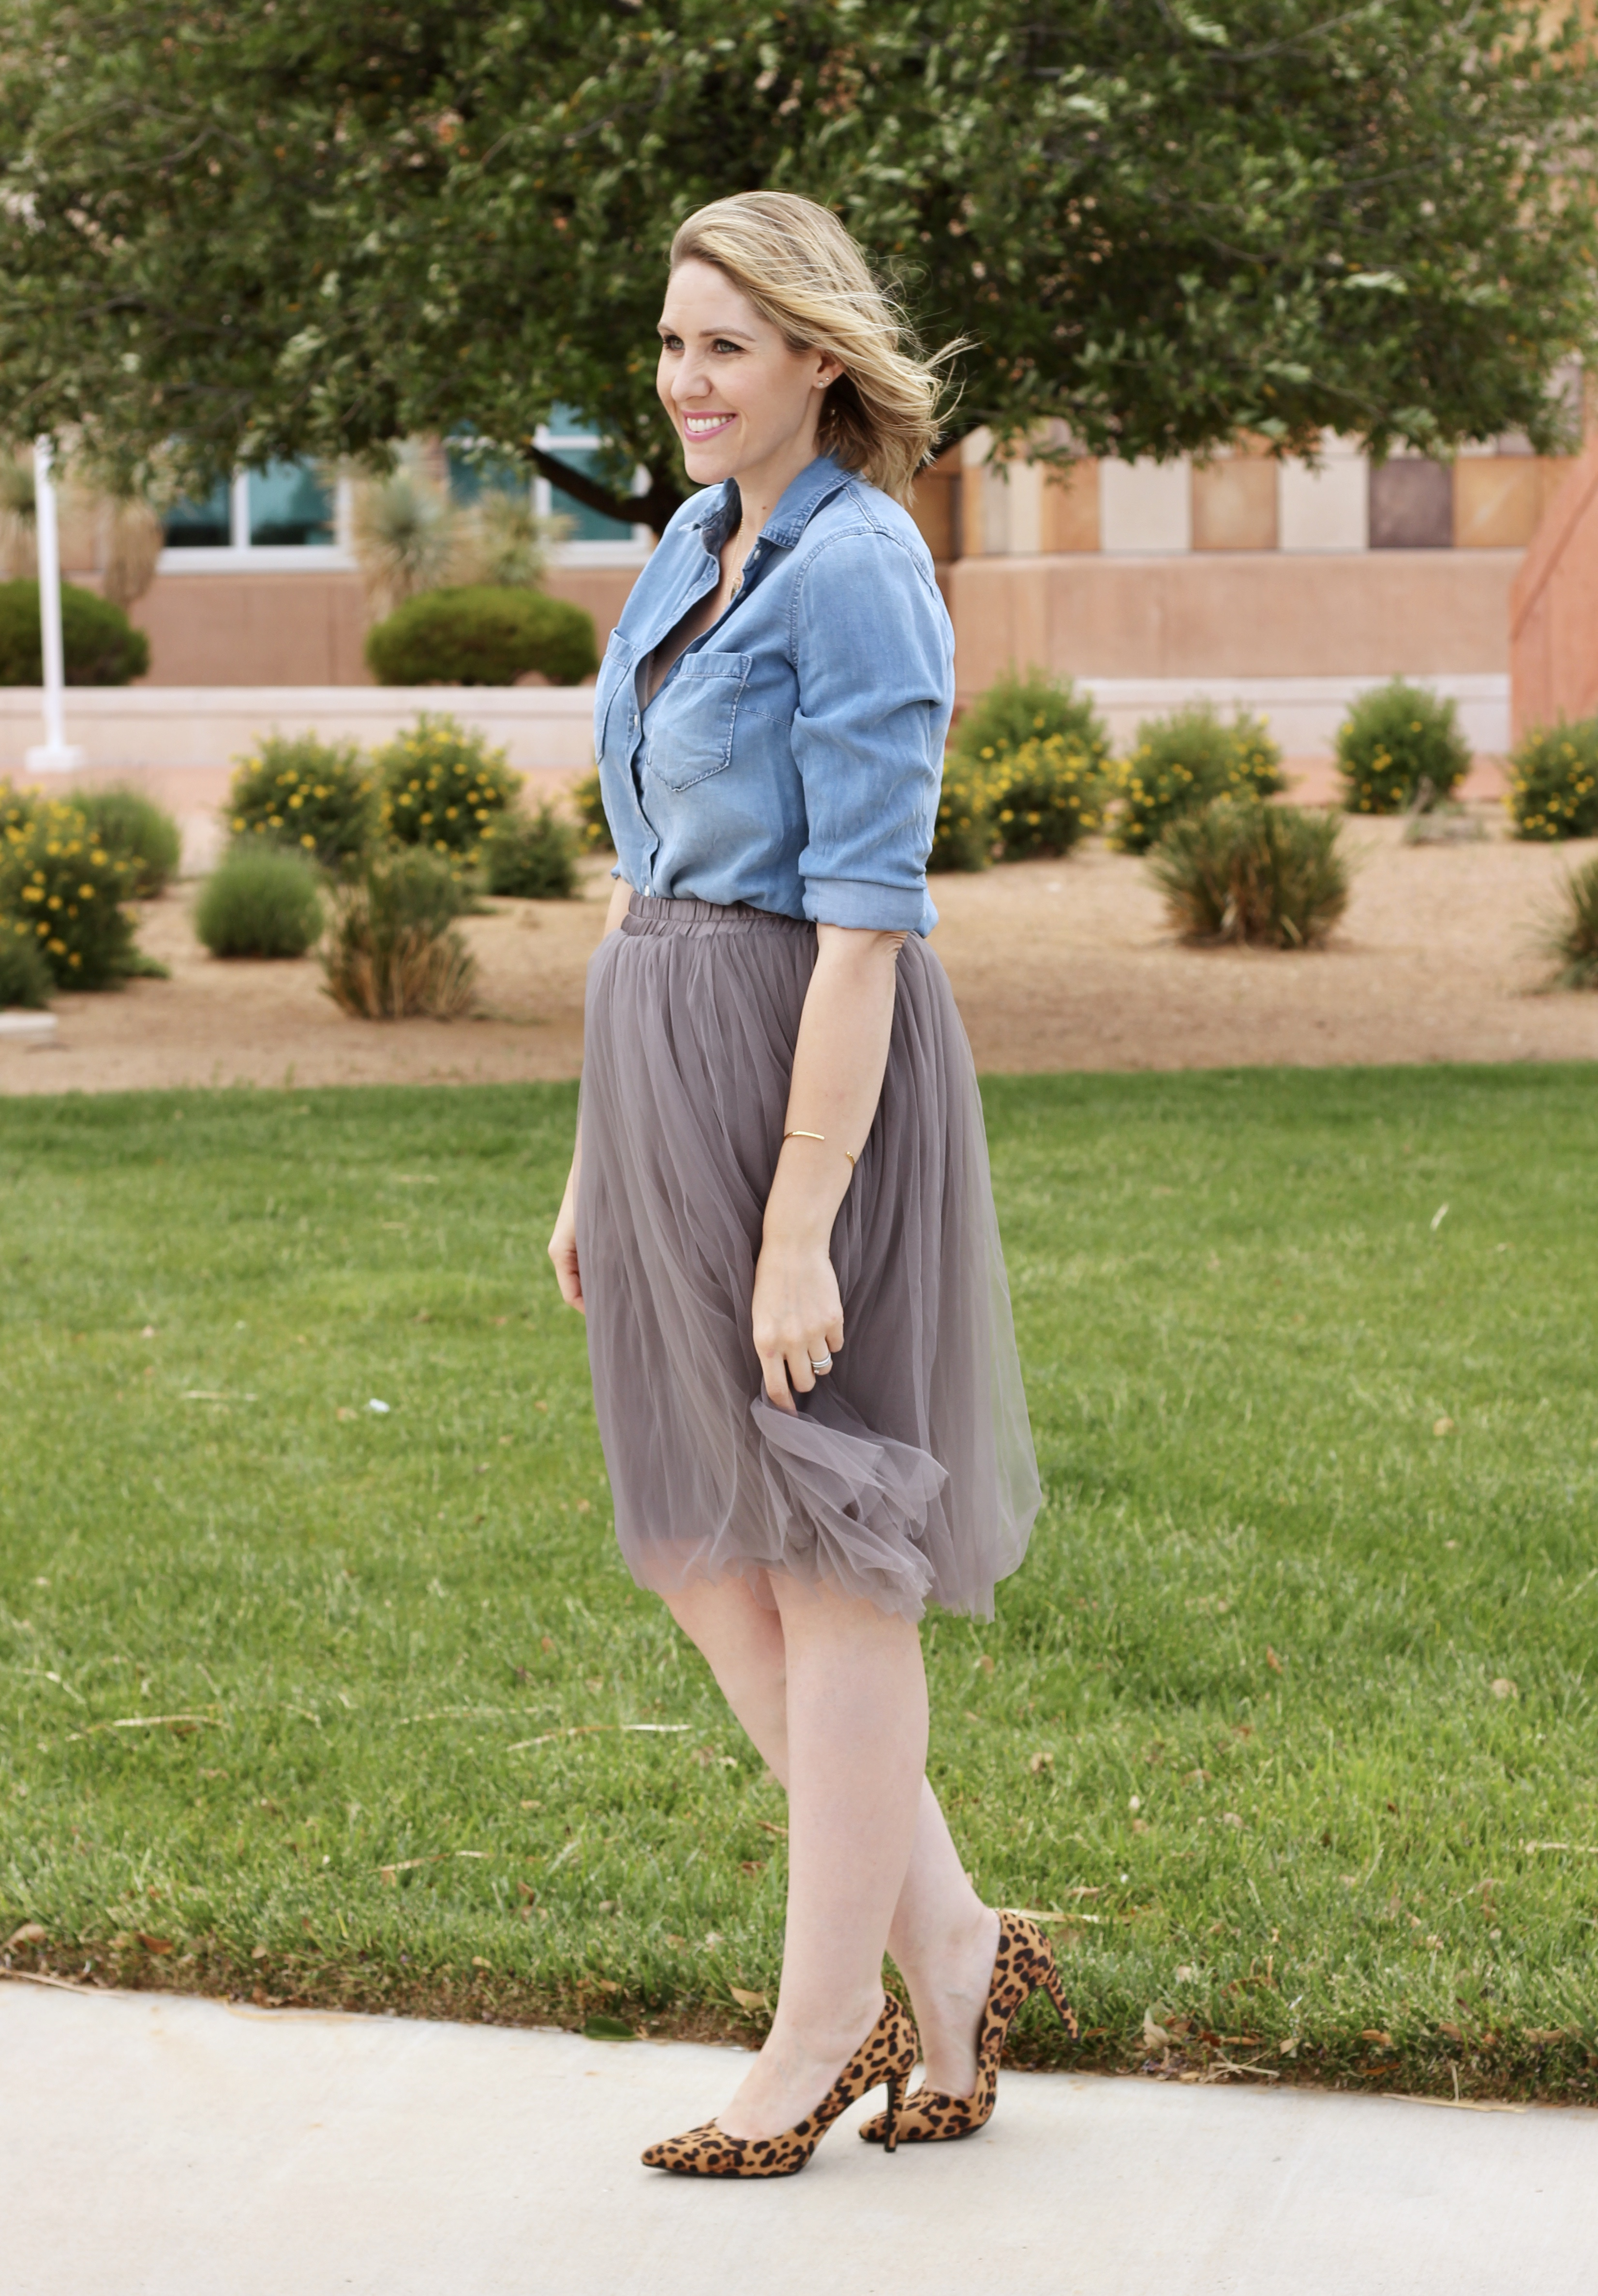 tulle skirt outfit for women